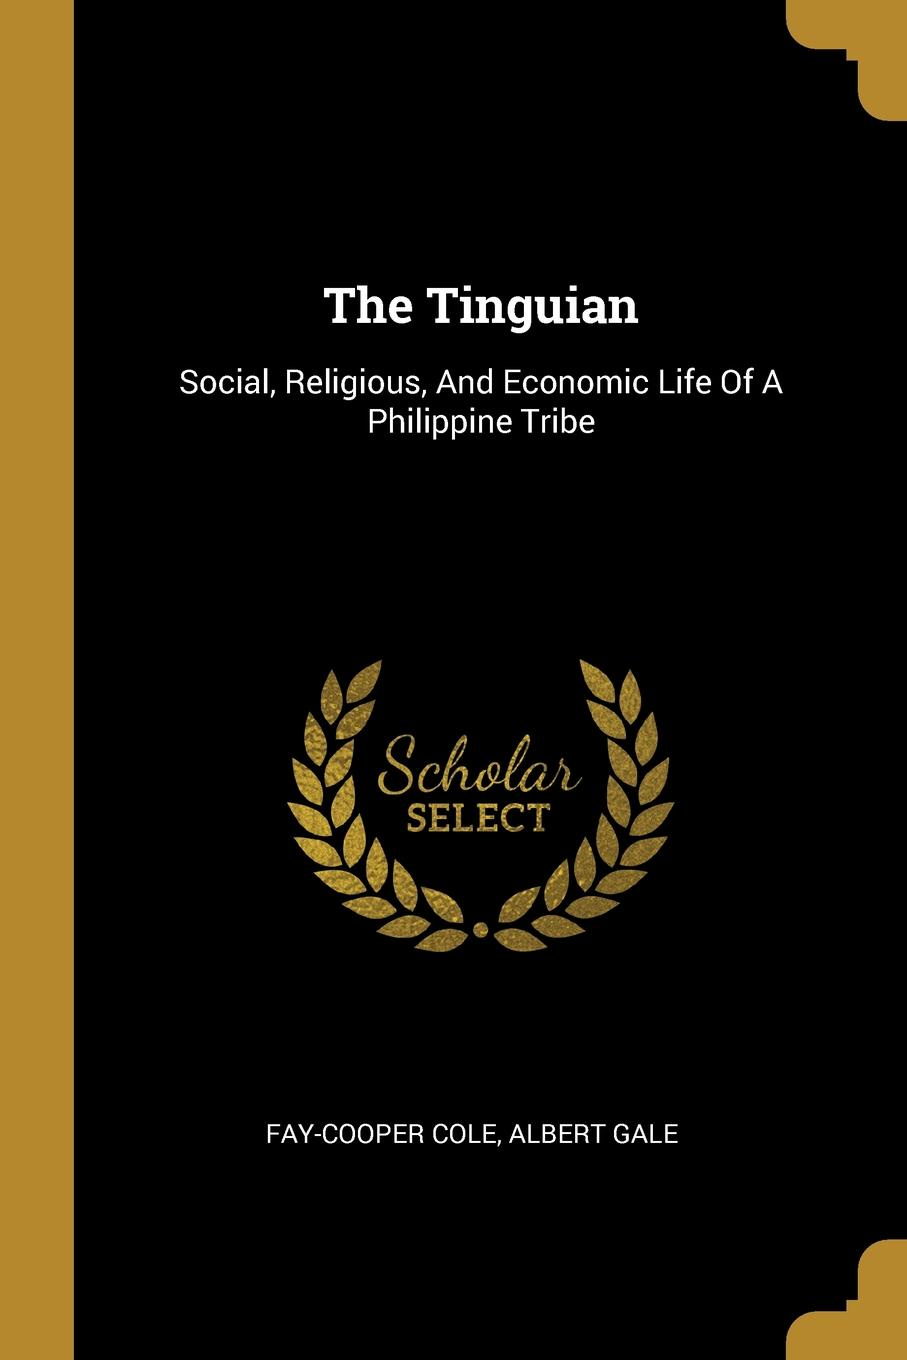 Fay-Cooper Cole, Albert Gale. The Tinguian. Social, Religious, And Economic Life Of A Philippine Tribe